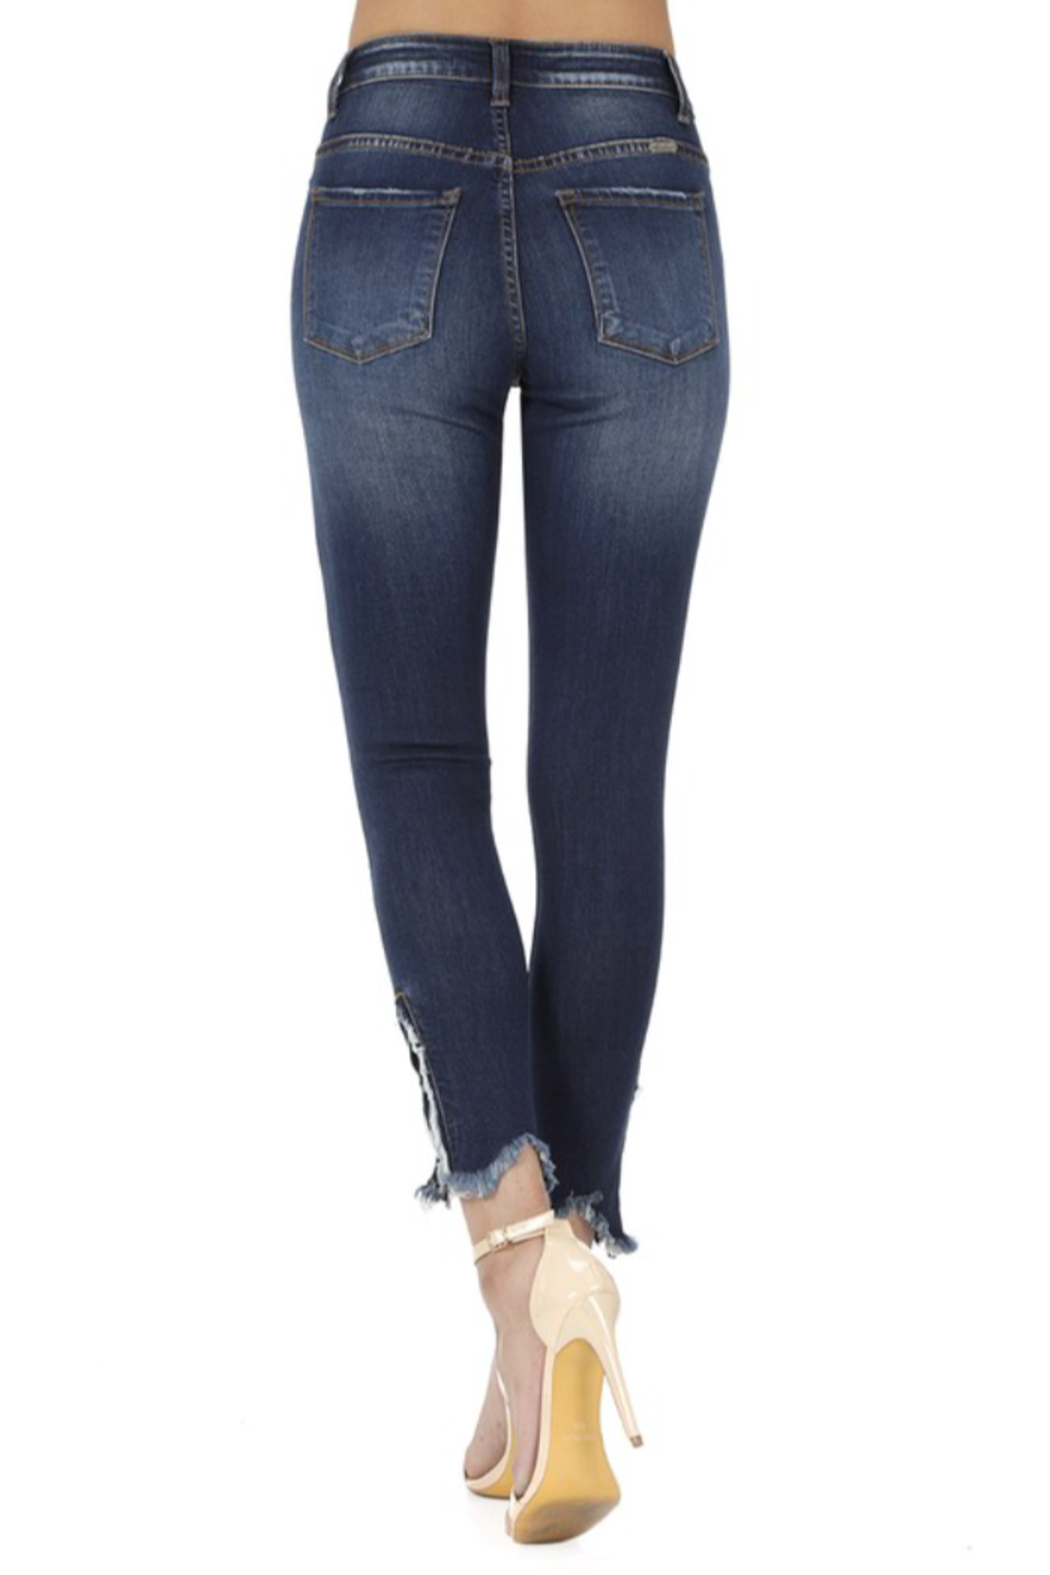 KanCan Bottom Zipper Jeans - Side Cropped Image